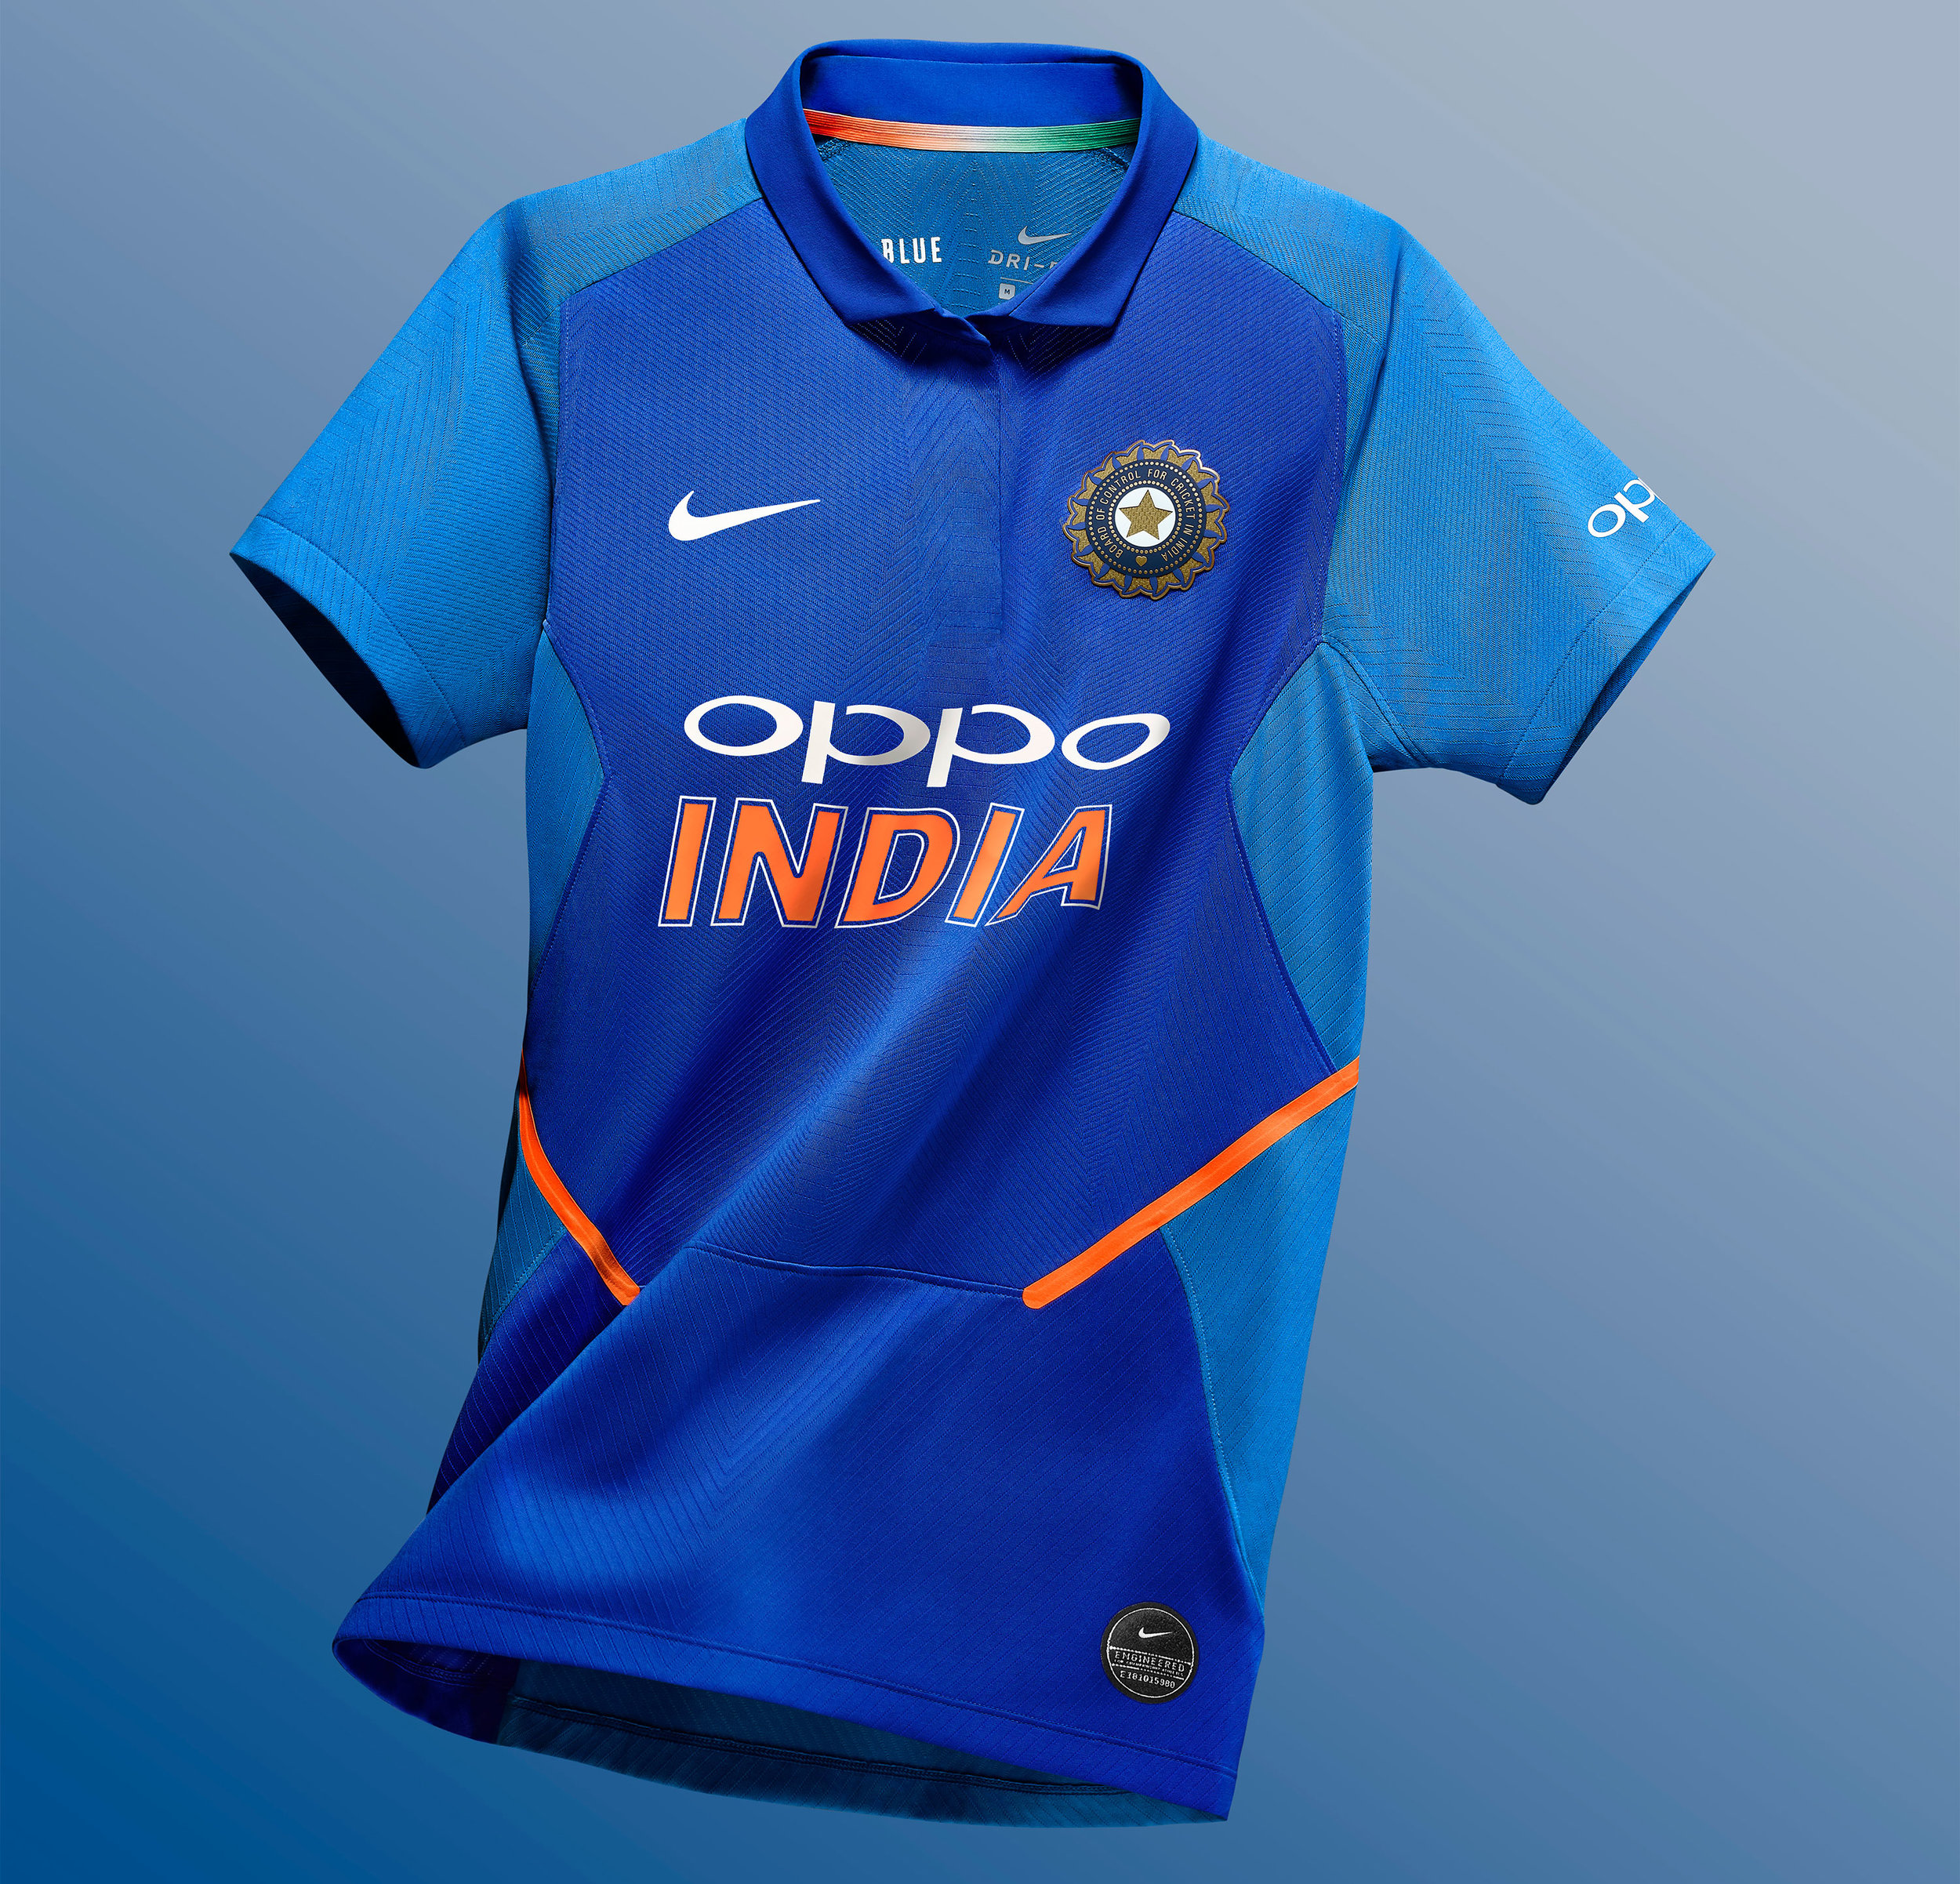 Nike_Cricket_IndiaNationalTeamKits_2019_56751_387376_r05_NIKE_APLA_SP19_Cricket_WomensStadiumTop_Floating_1217_HR_original.jpg